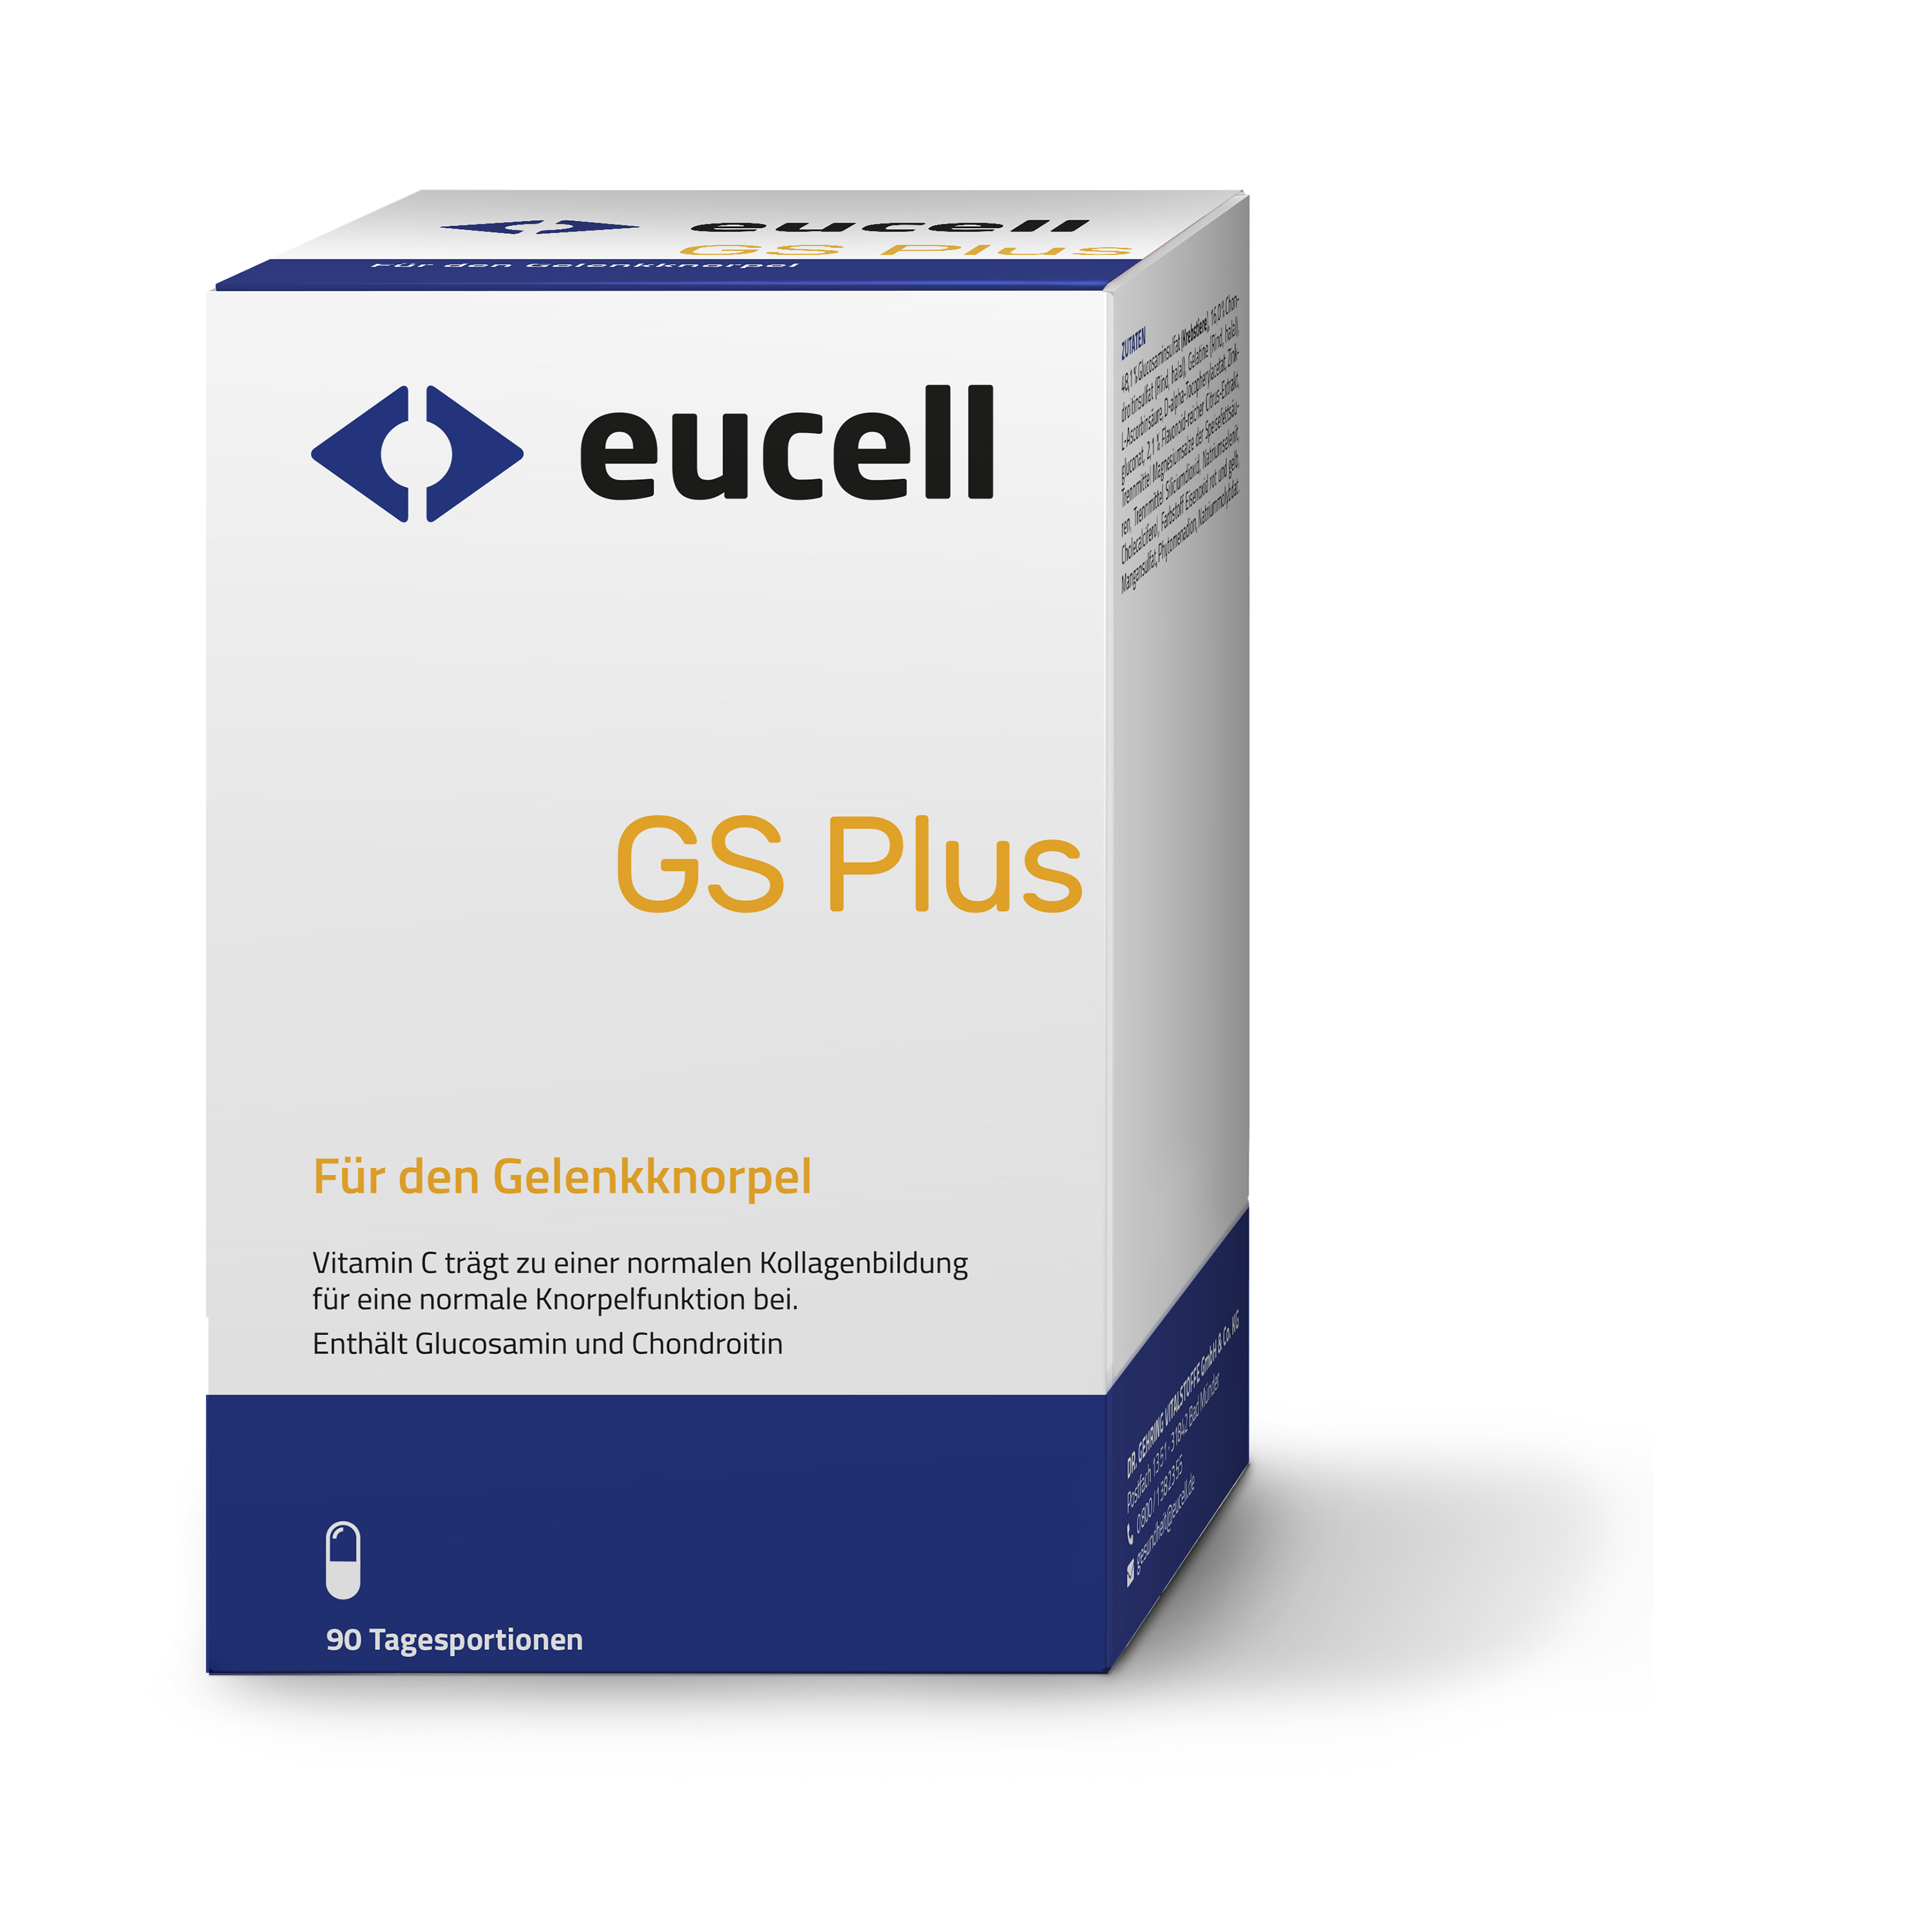 EUCELL GS Plus